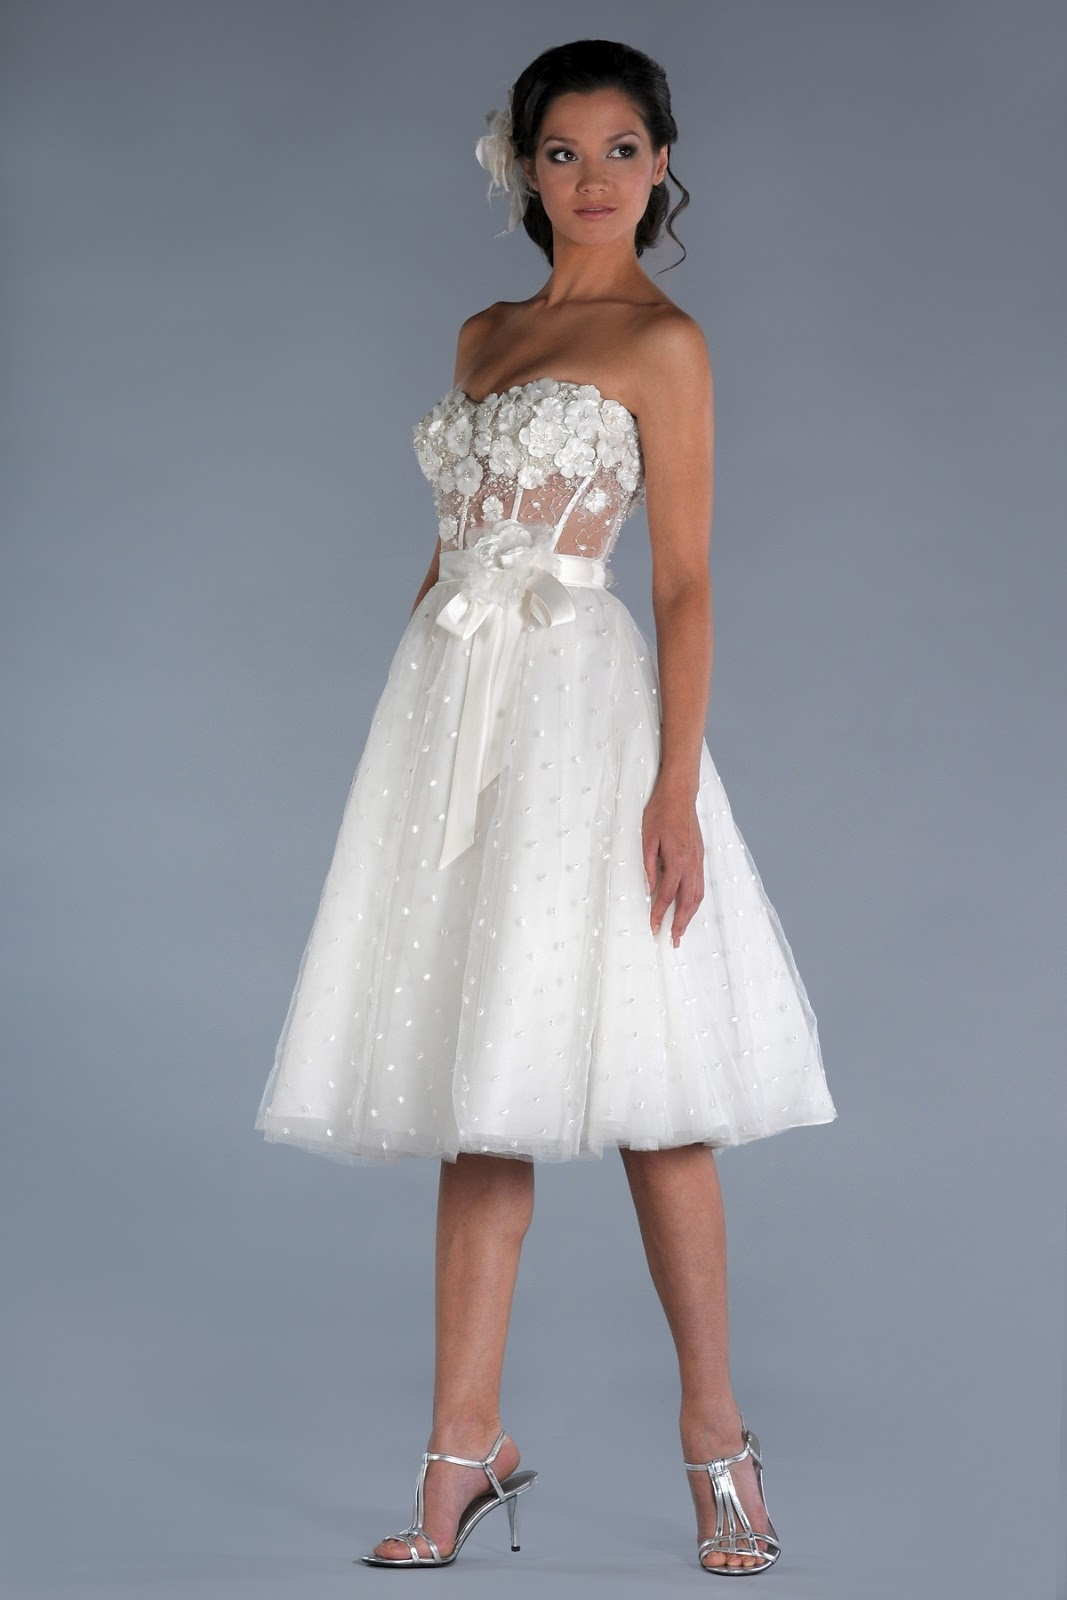 Dressybridal 5 cute short wedding dresses for summer for Summer dresses for weddings